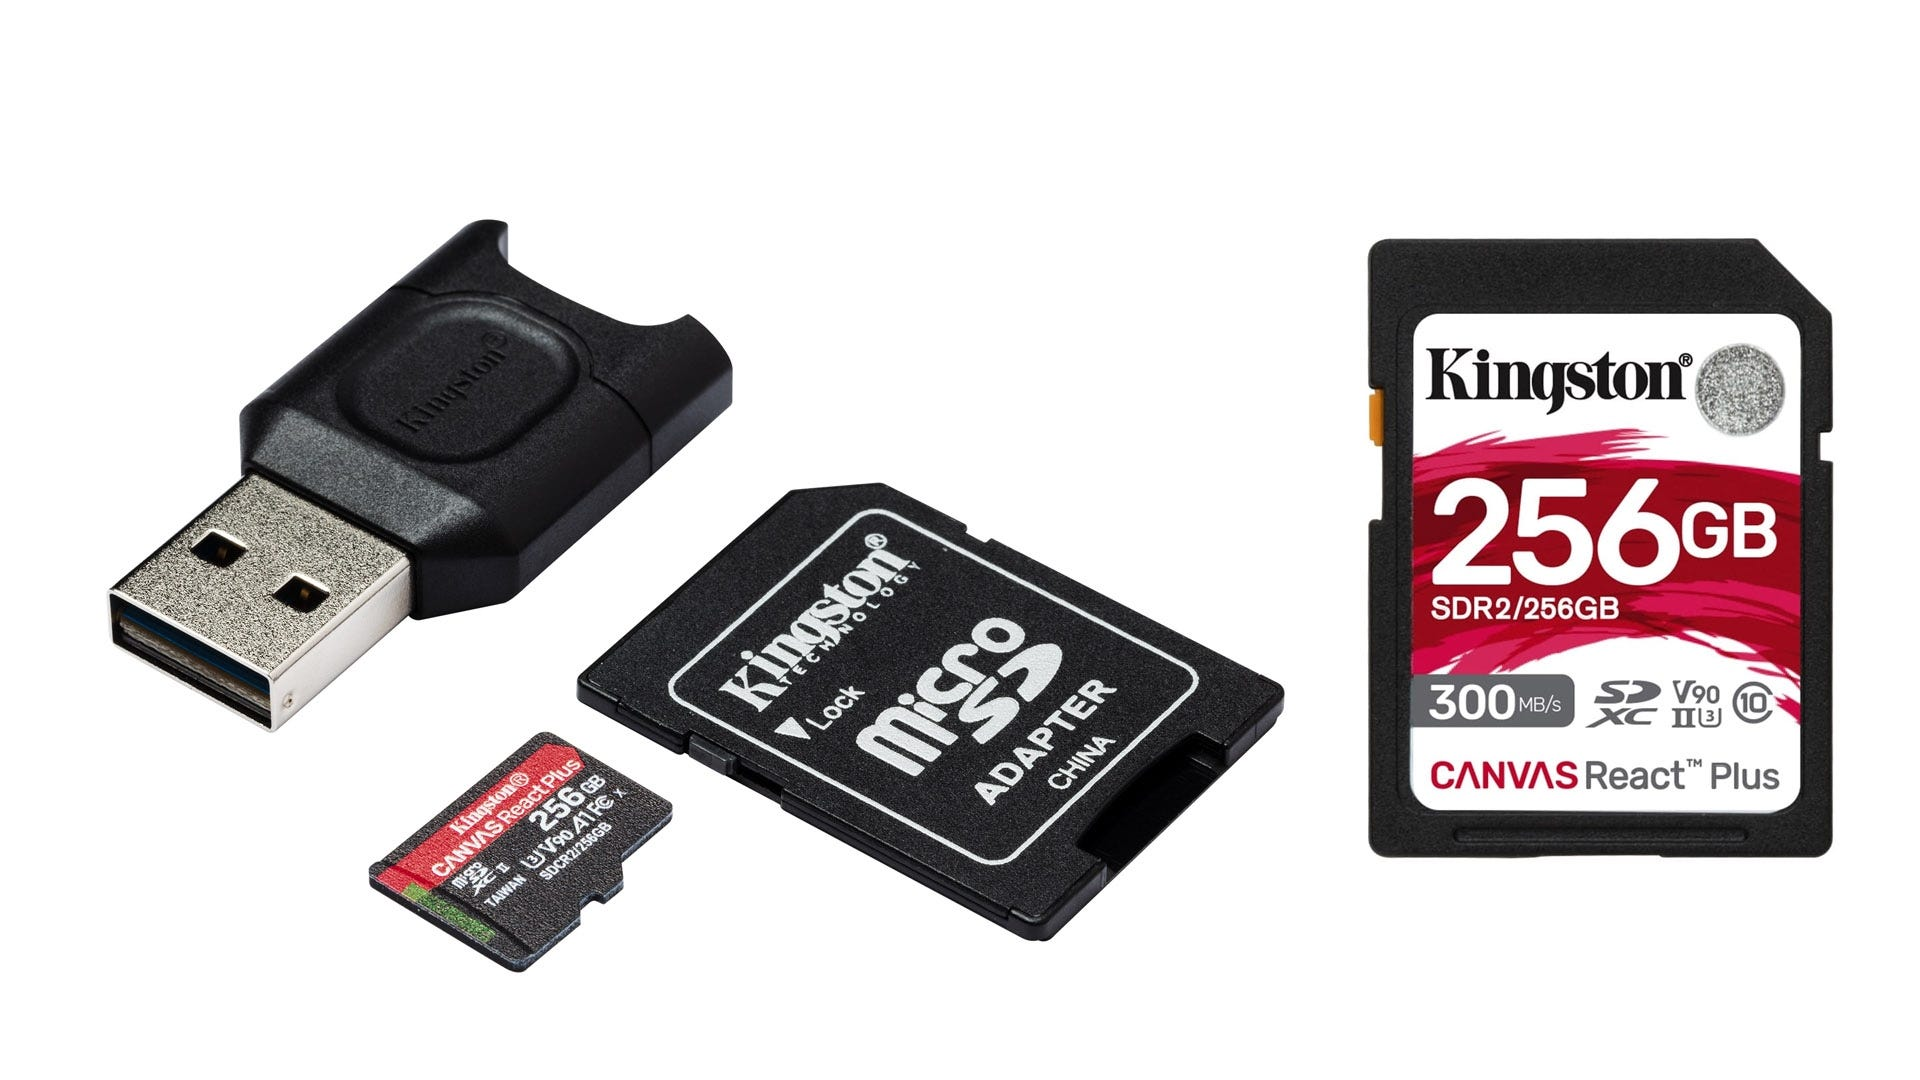 Image result for Kingston's Canvas React Plus SD card png